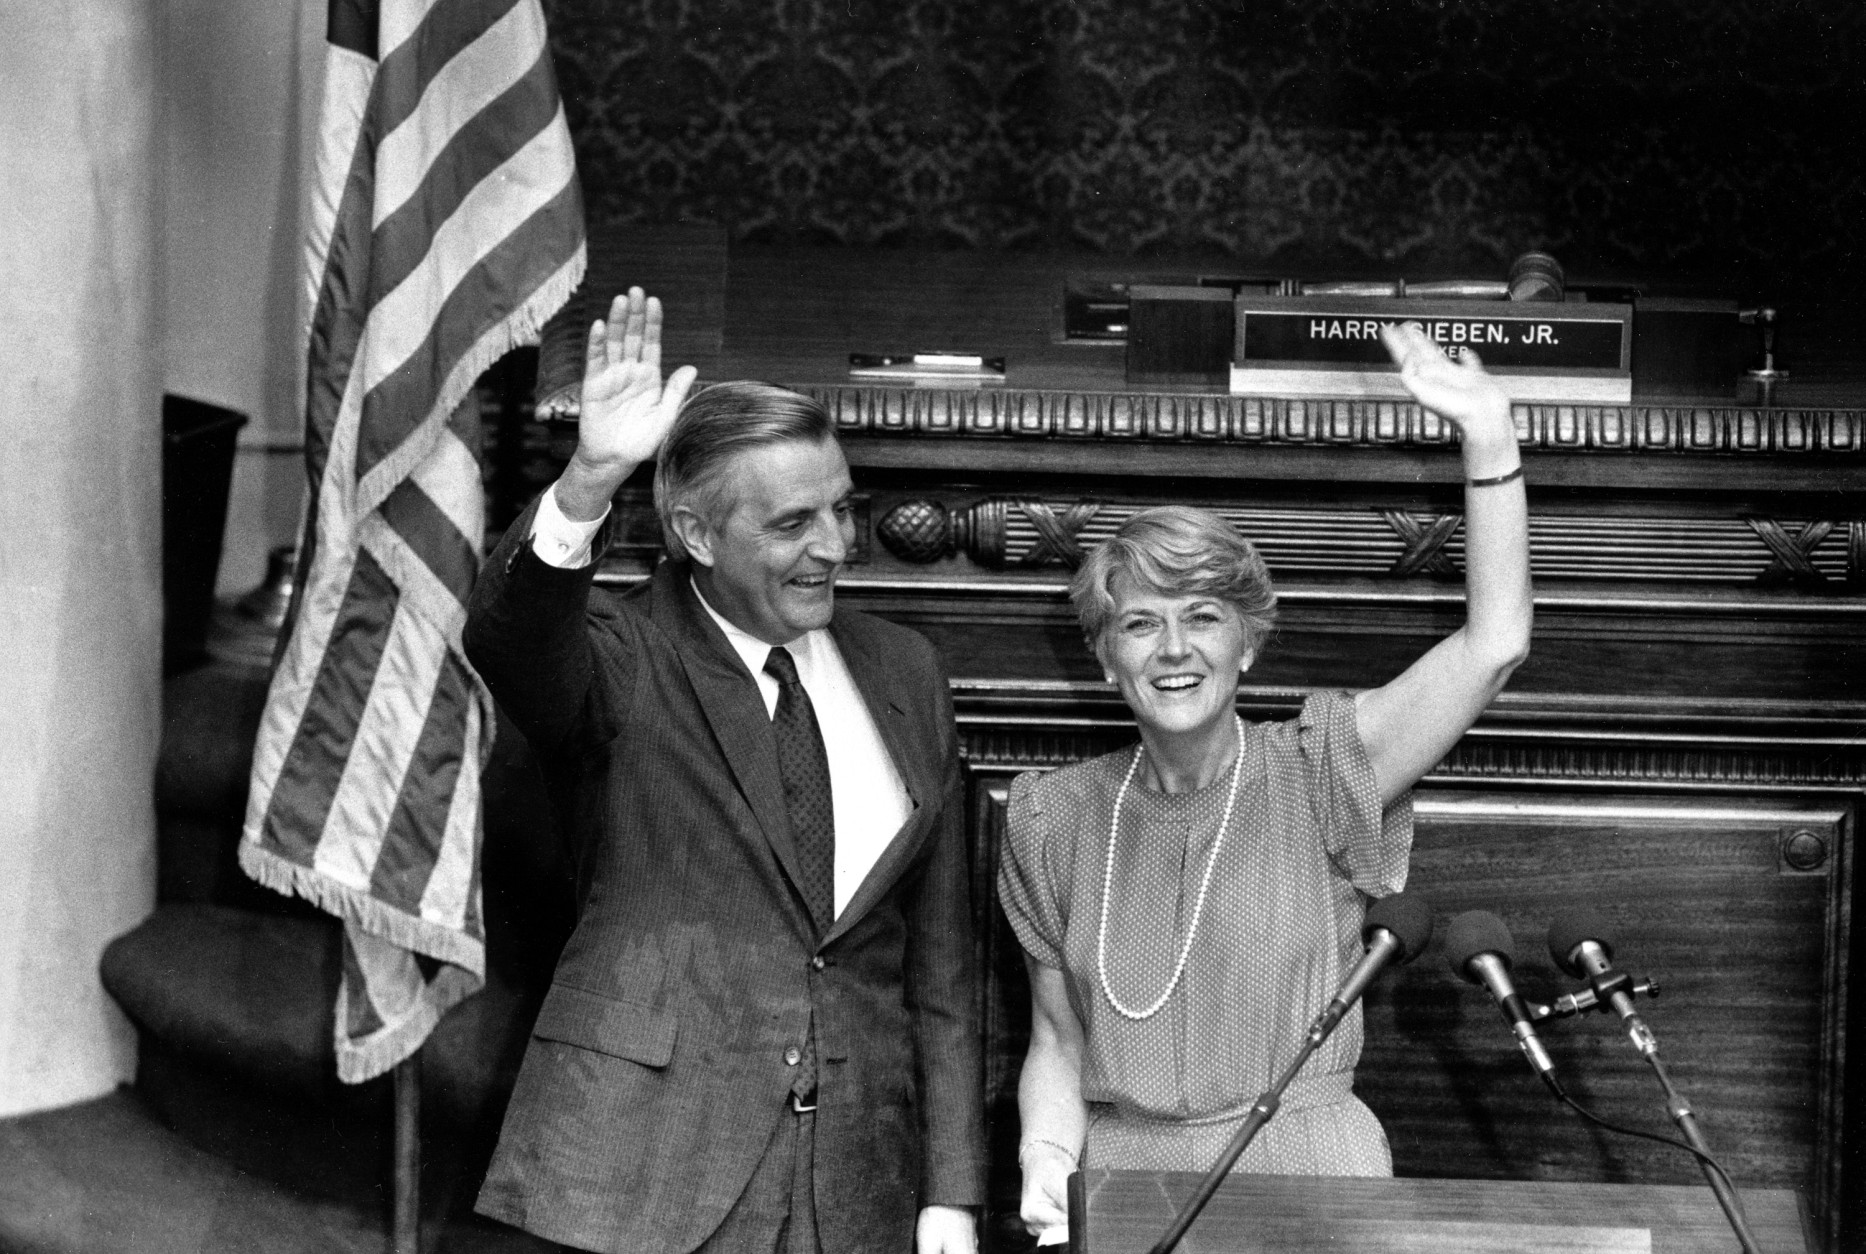 Vice Presidential candidate Walter Mondale, left, and congresswoman Geraldine Ferraro wave after Mondale announced Ferraro as his running mate in the chamber of the Minneapolis House of Representatives, St. Paul, Minn., July 12, 1984.  Ferraro becomes the first female vice presidential candidate of a major party in the history of the United States.  (AP Photo/Tom Olmscheid)